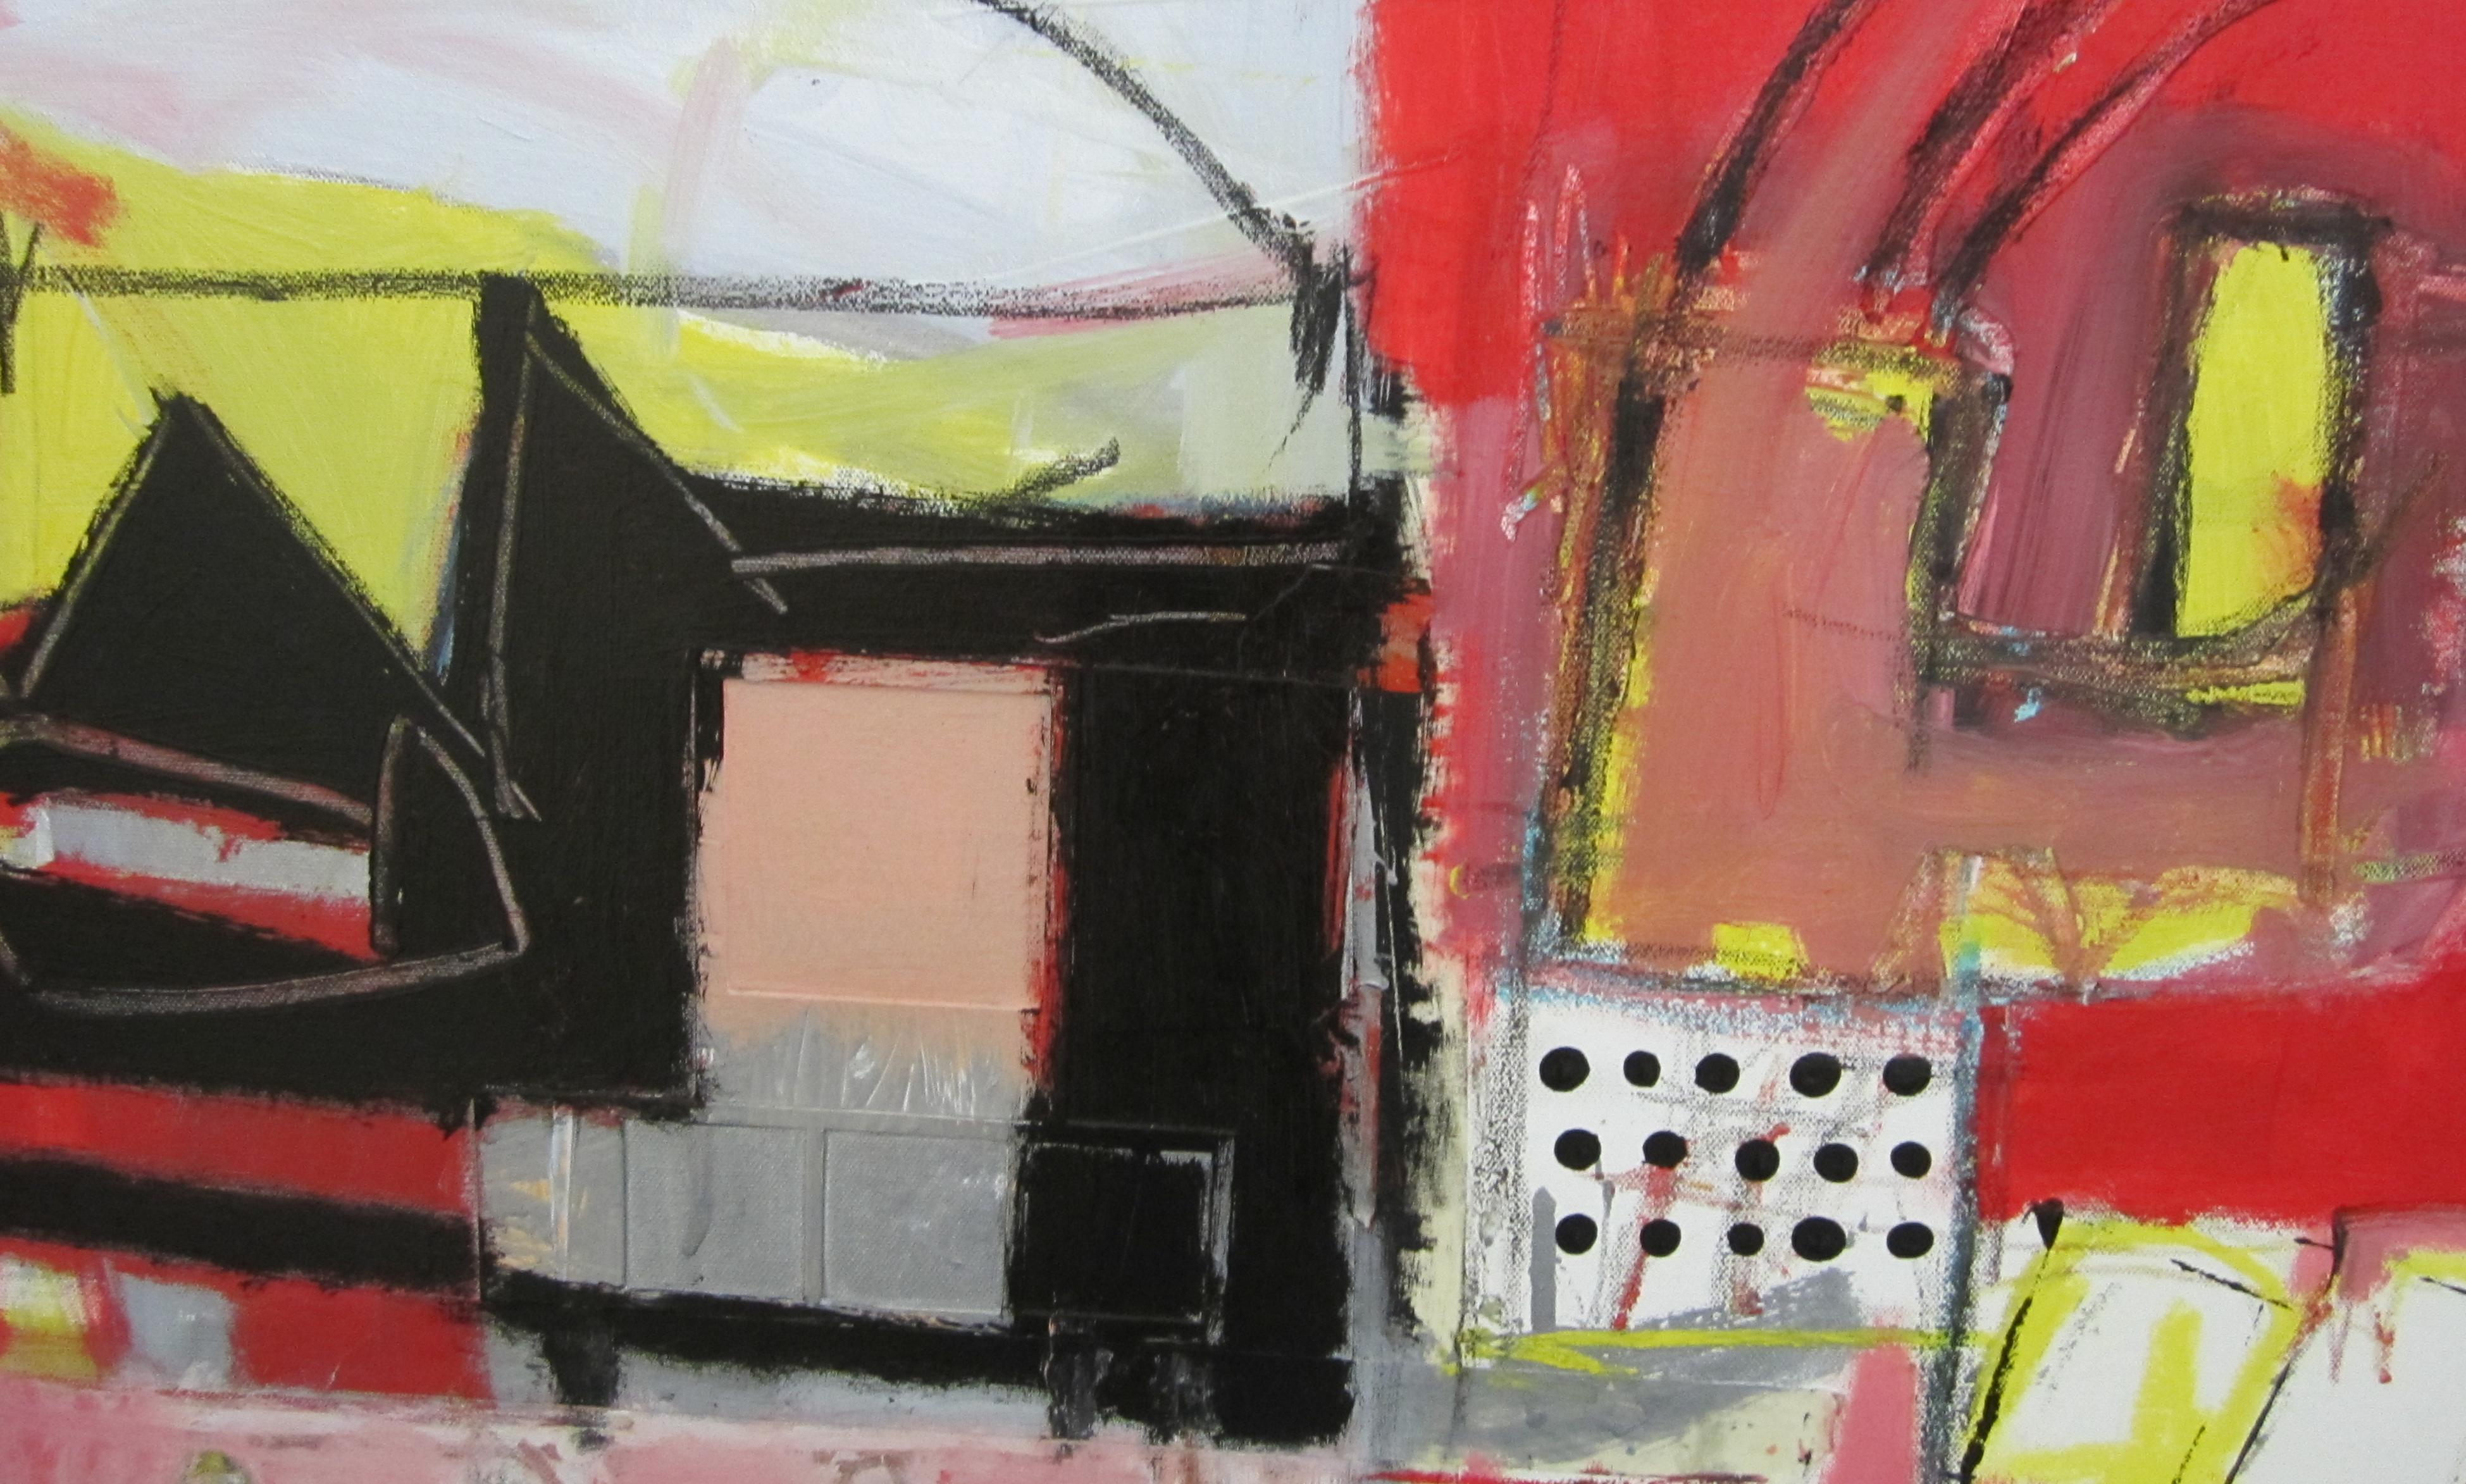 Huyton Gallery: PAUL ROMANO: The Beginning of a Great Adventure